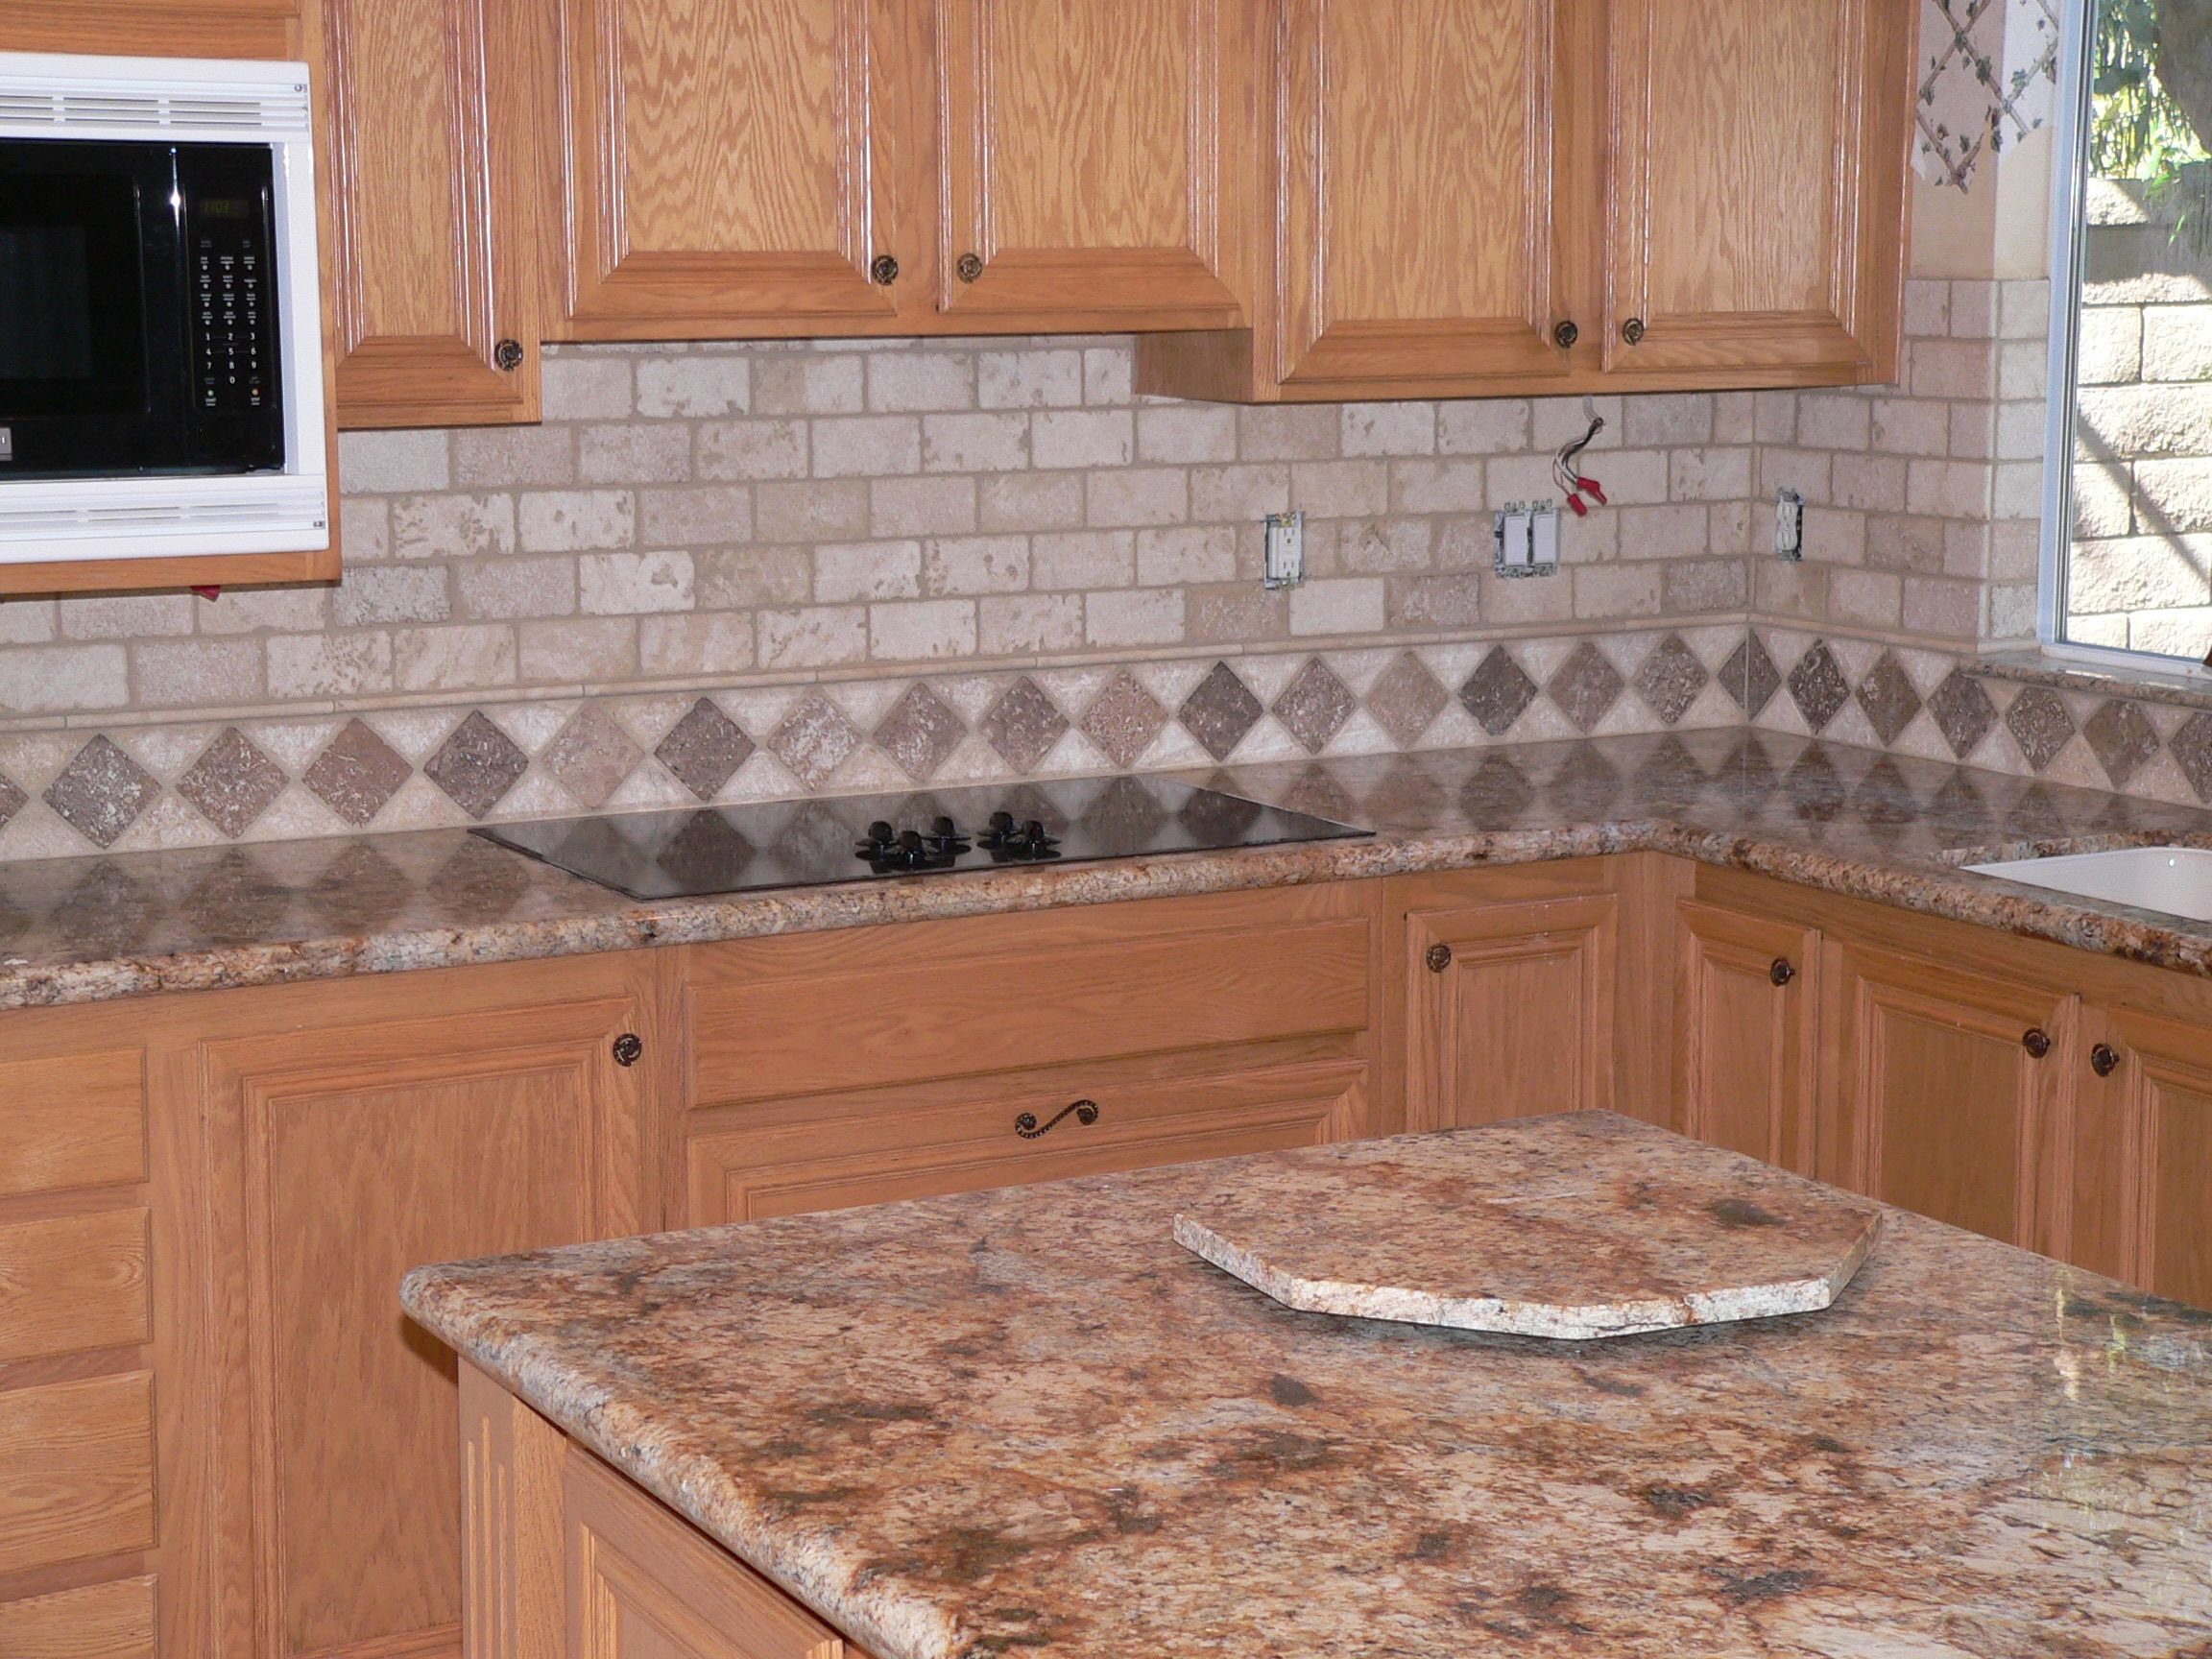 Decorative Tile Kitchen Backsplash Kitchen Tile Ideas  Different Colors On Diagonal Pattern All